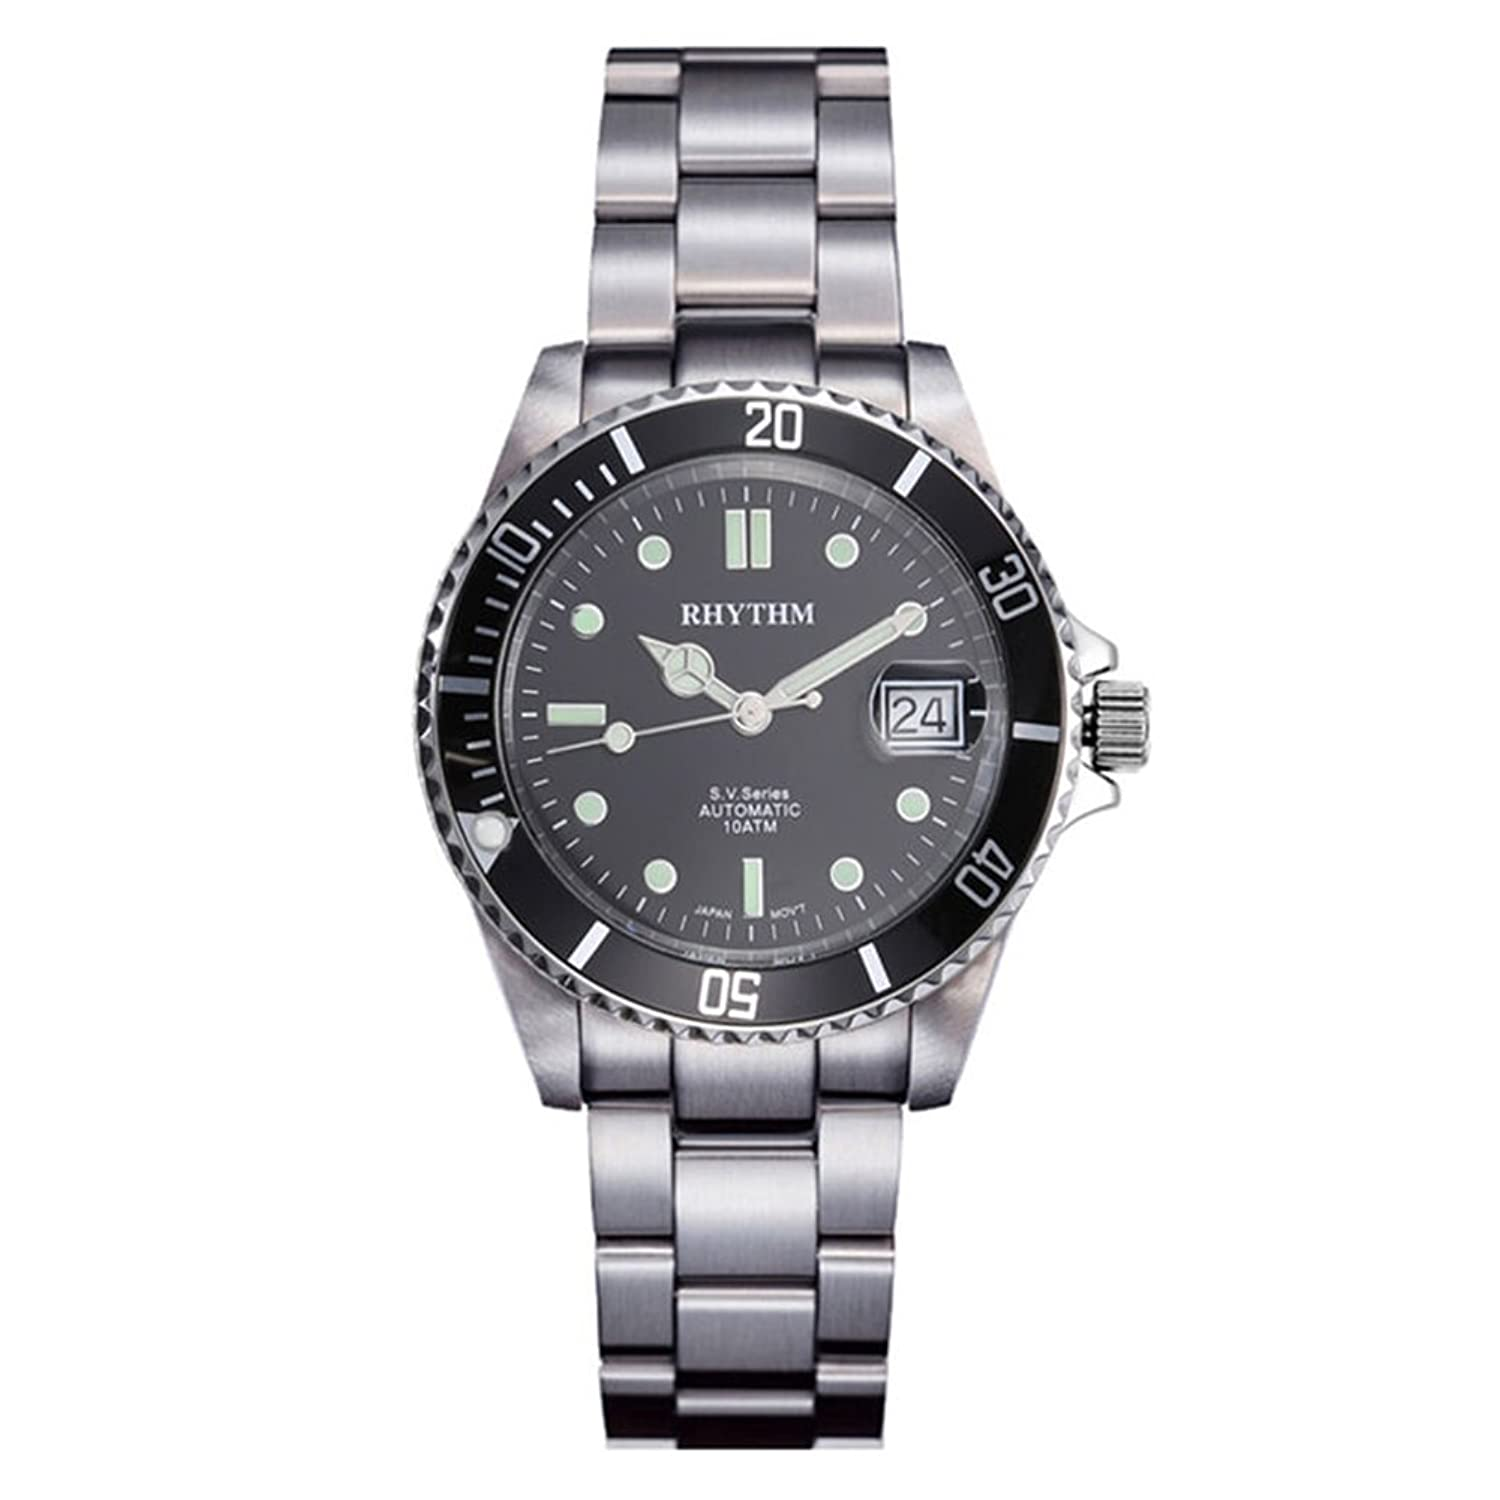 Amazon.com: RHYTHM Japanese Automatic Watch Waterproof and Casual ...